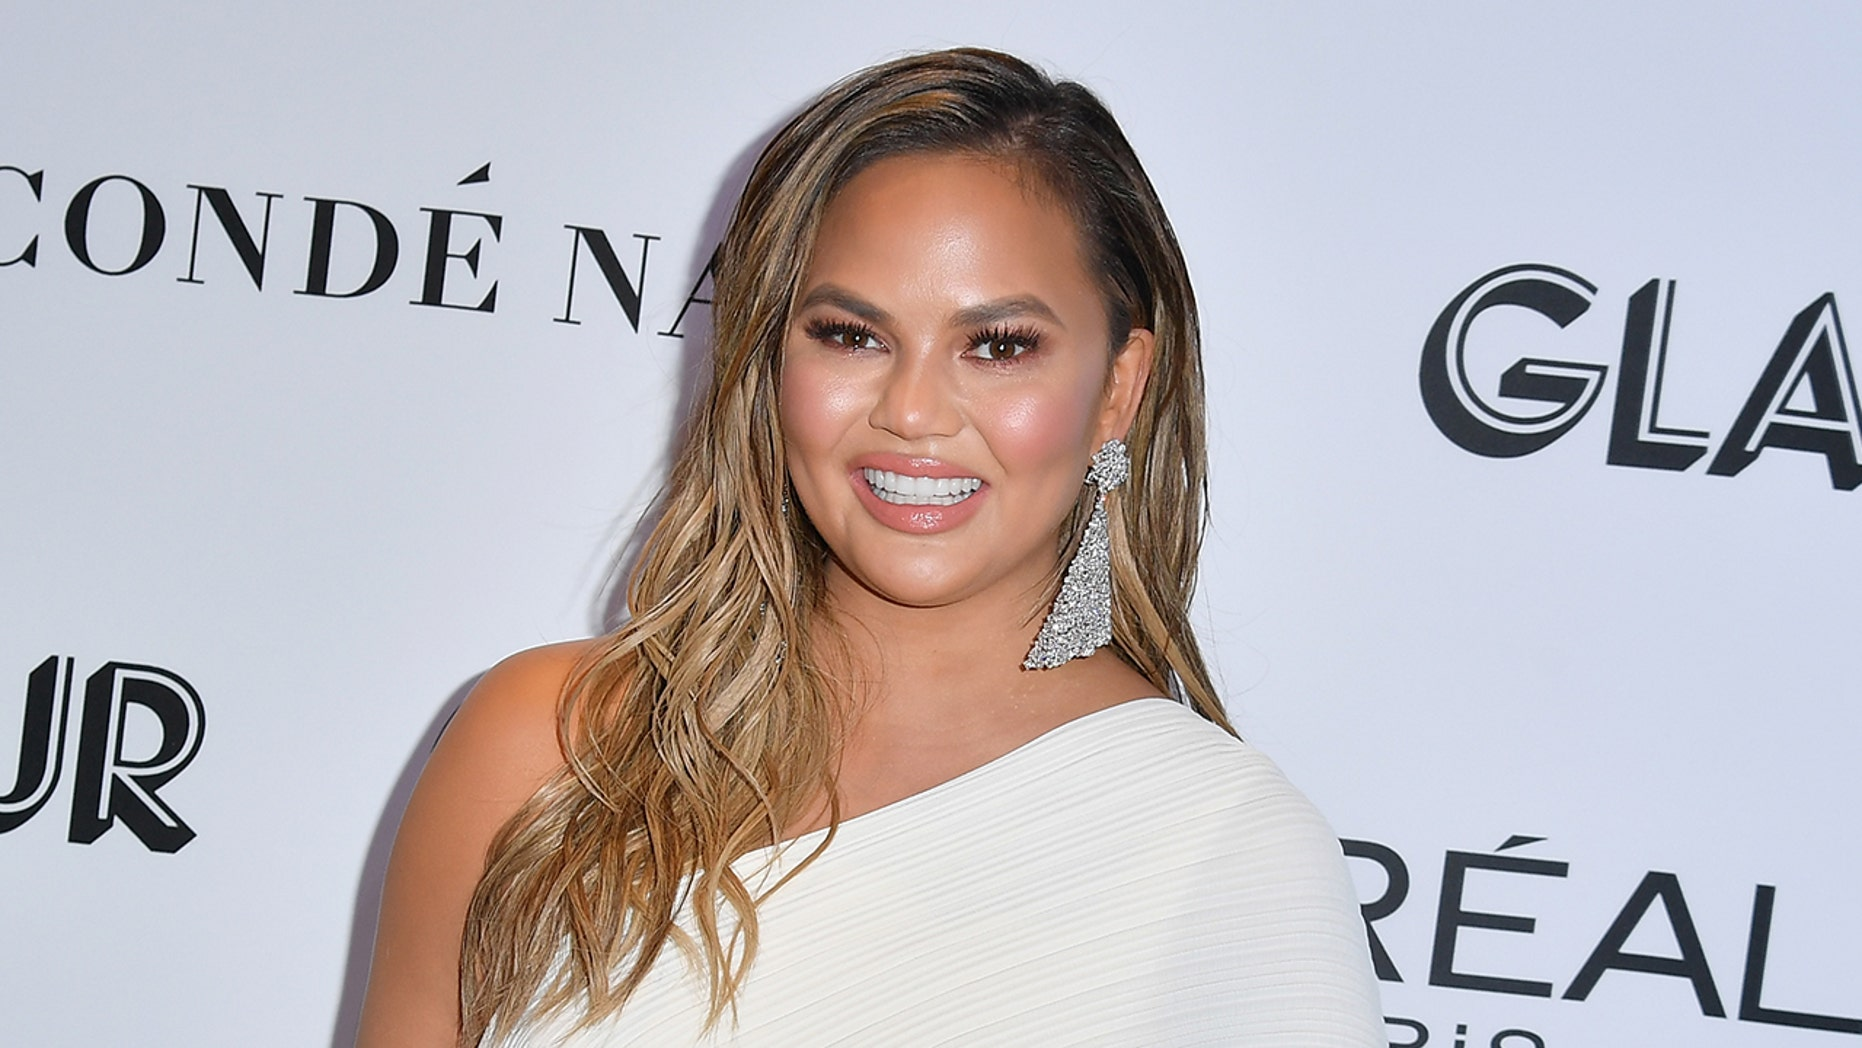 Chrissy Teigen pokes fun at college admissions scandal with her own photos